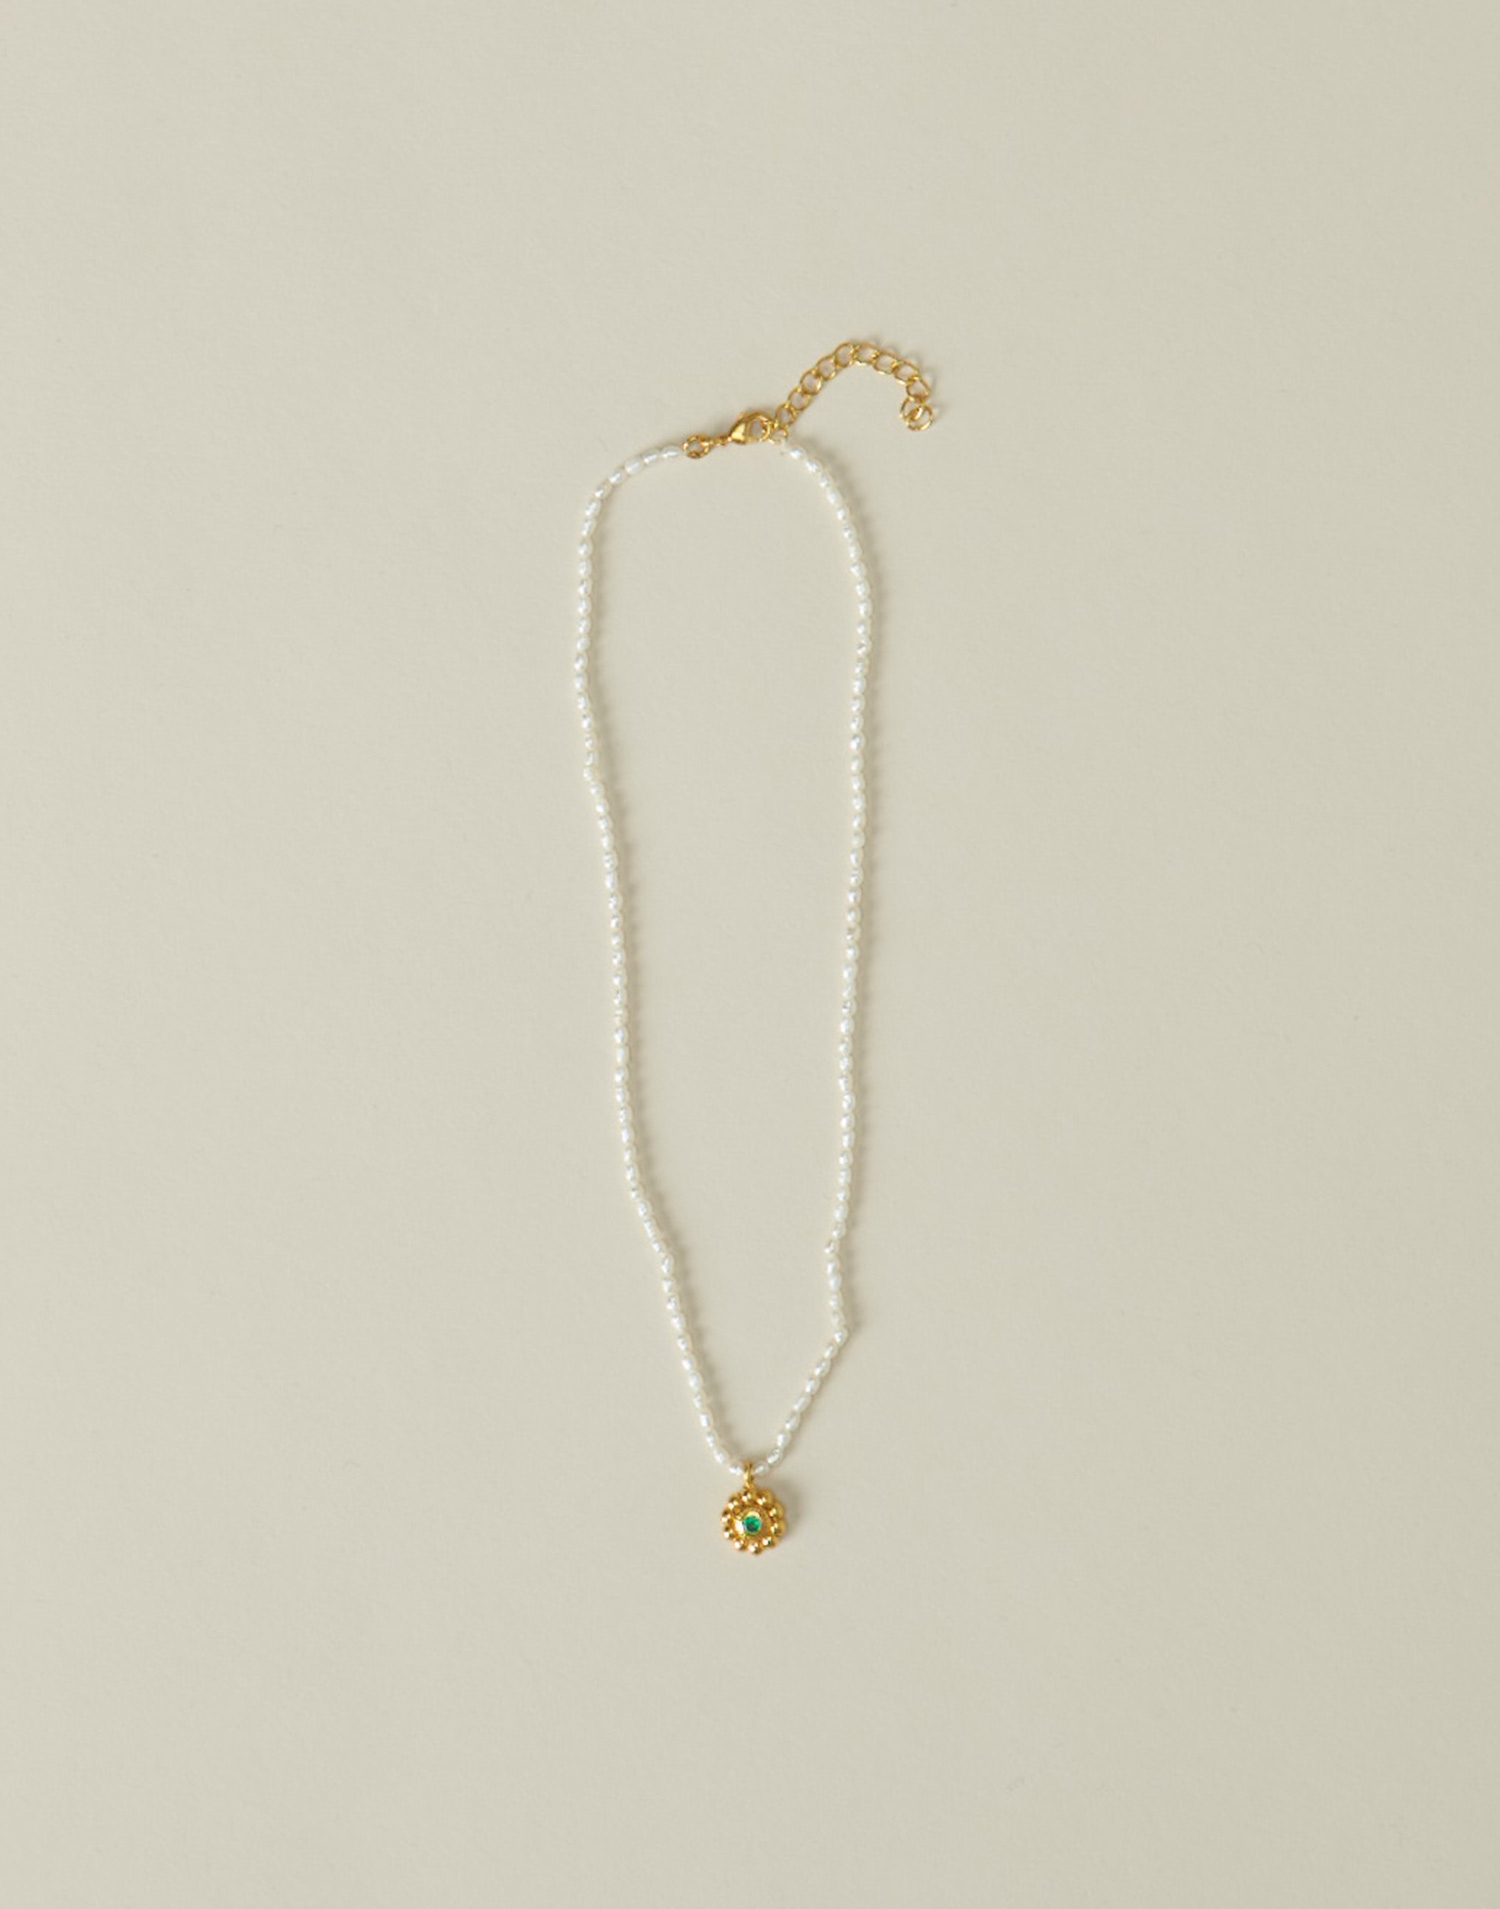 Pearl necklace with gold plated flower pendant